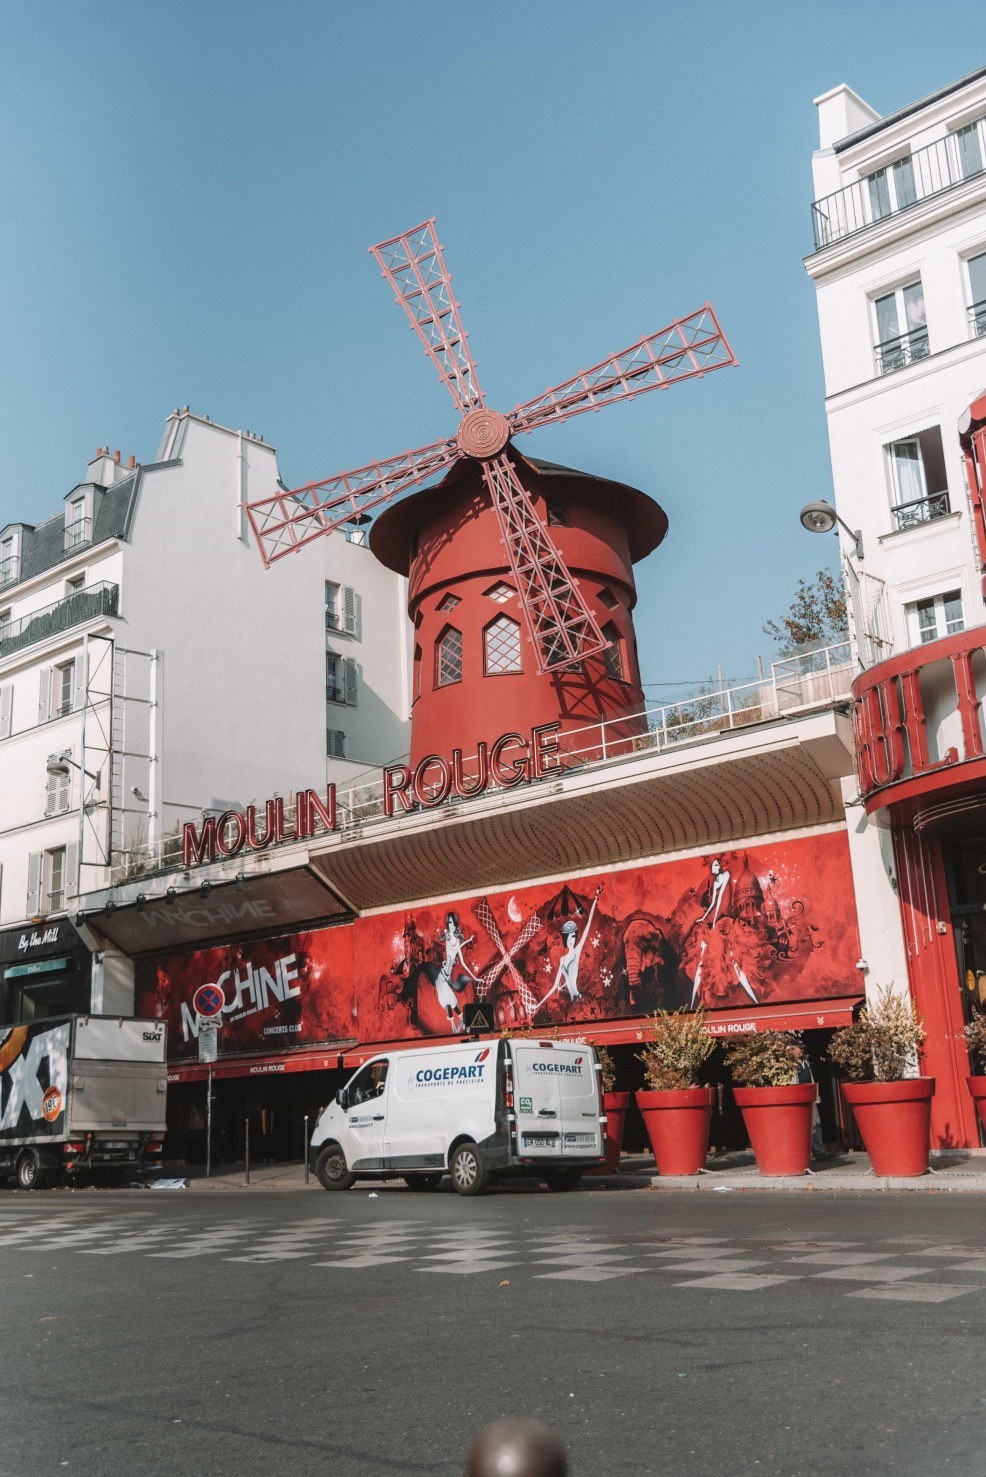 Most Instagrammable places in Paris, Moulin Rouge